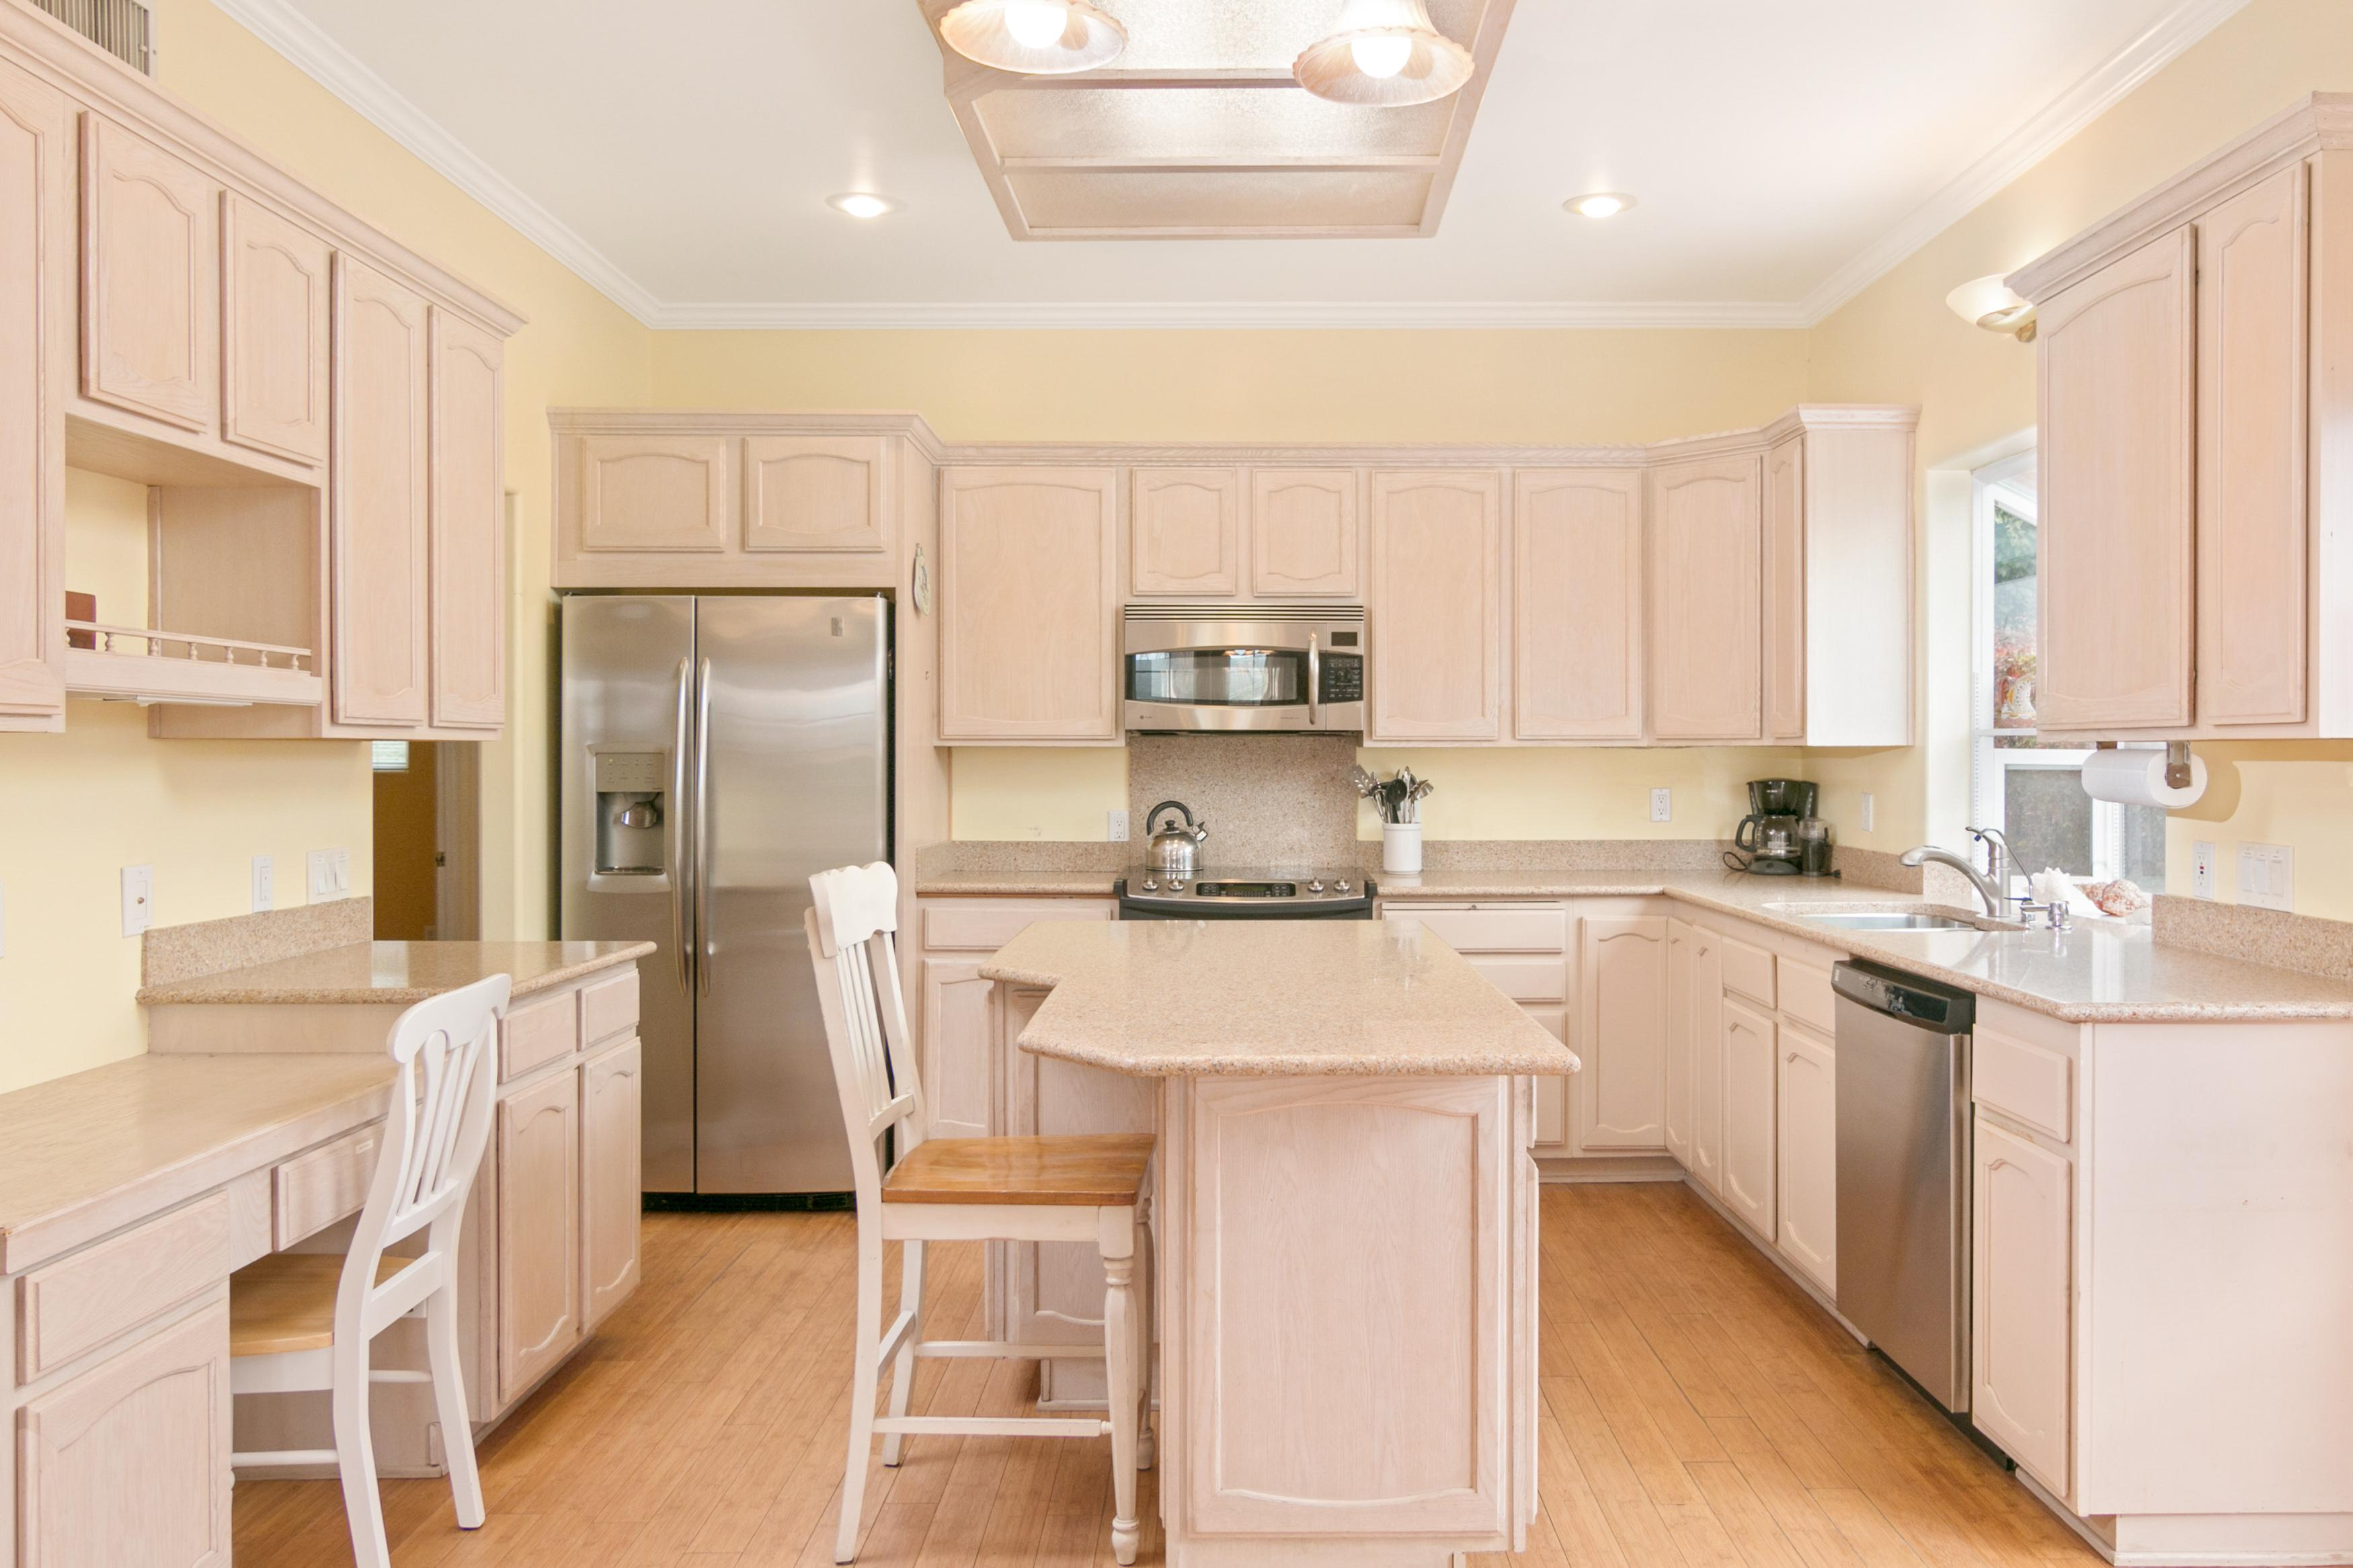 The kitchen with a center island, granite countertops and stainless steel appliances